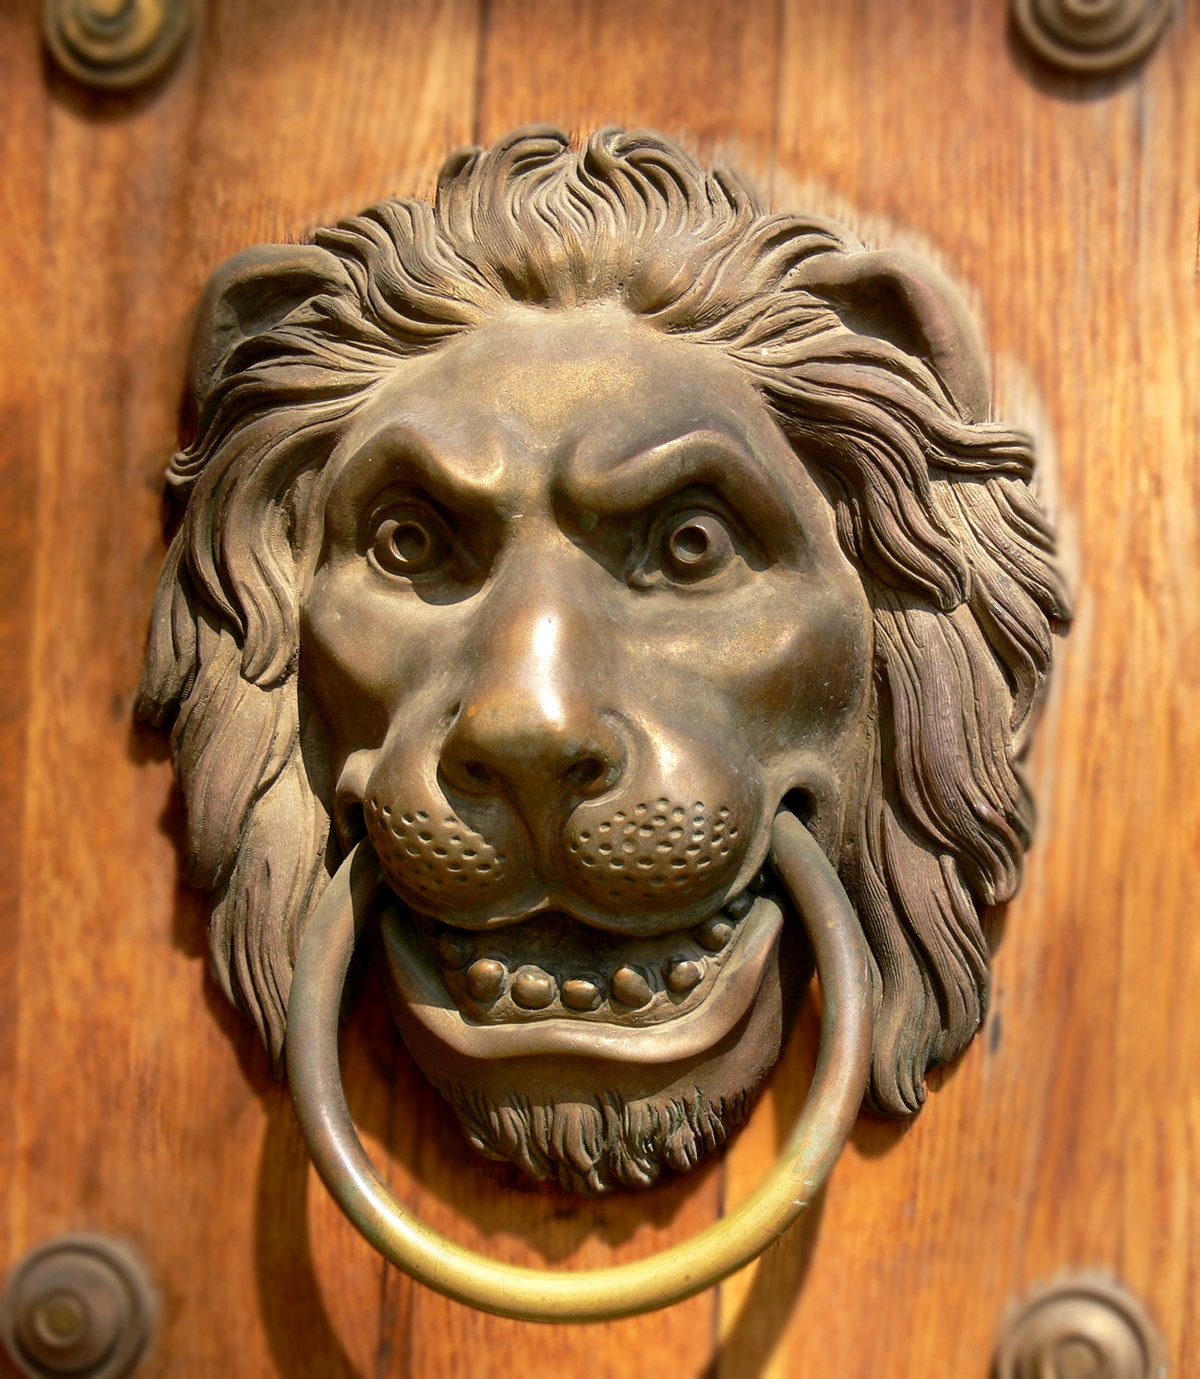 Lion door knocker at Lazienka Palace, Warsaw, Poland